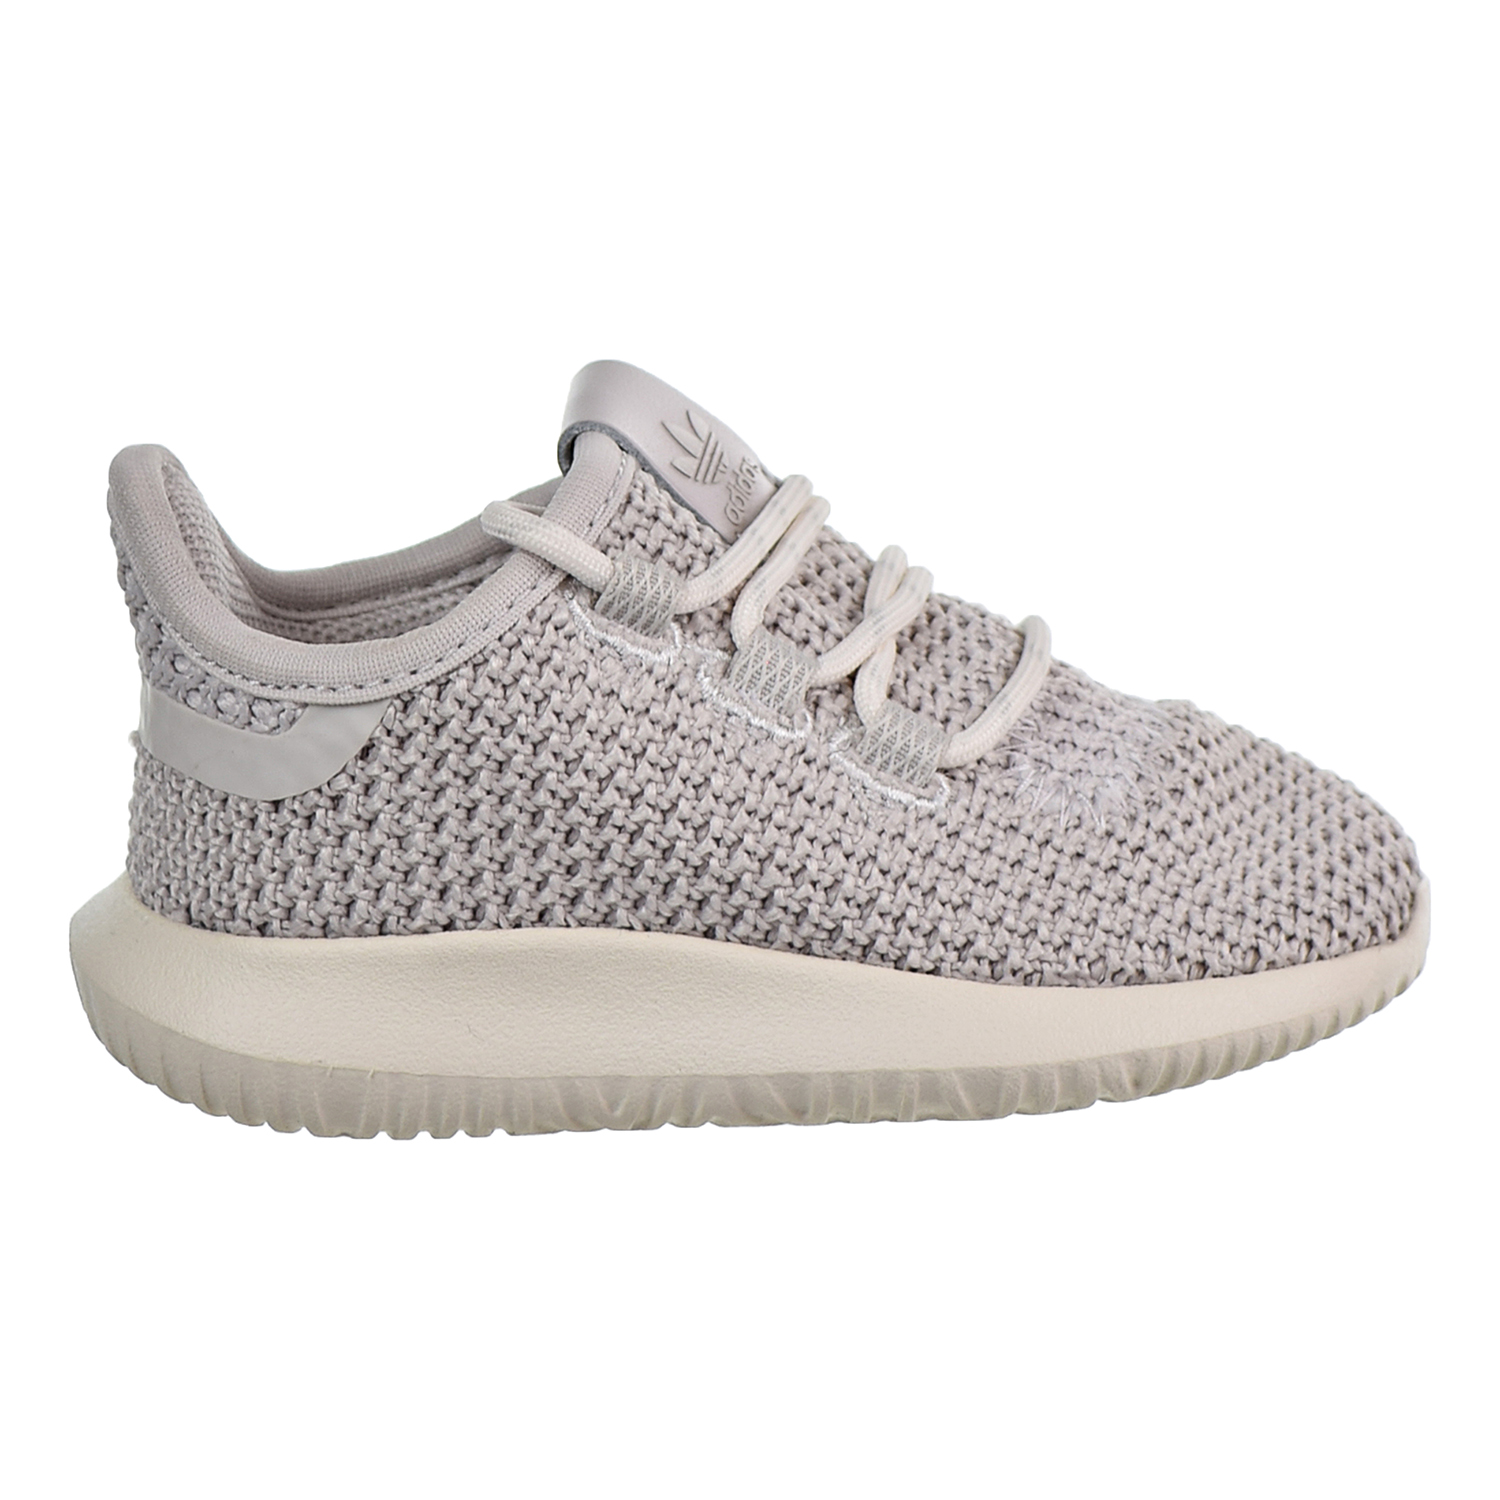 best website 19a5a 35ce6 Details about Adidas Tubular Shadow I Toddler's Shoes Off White BB6760